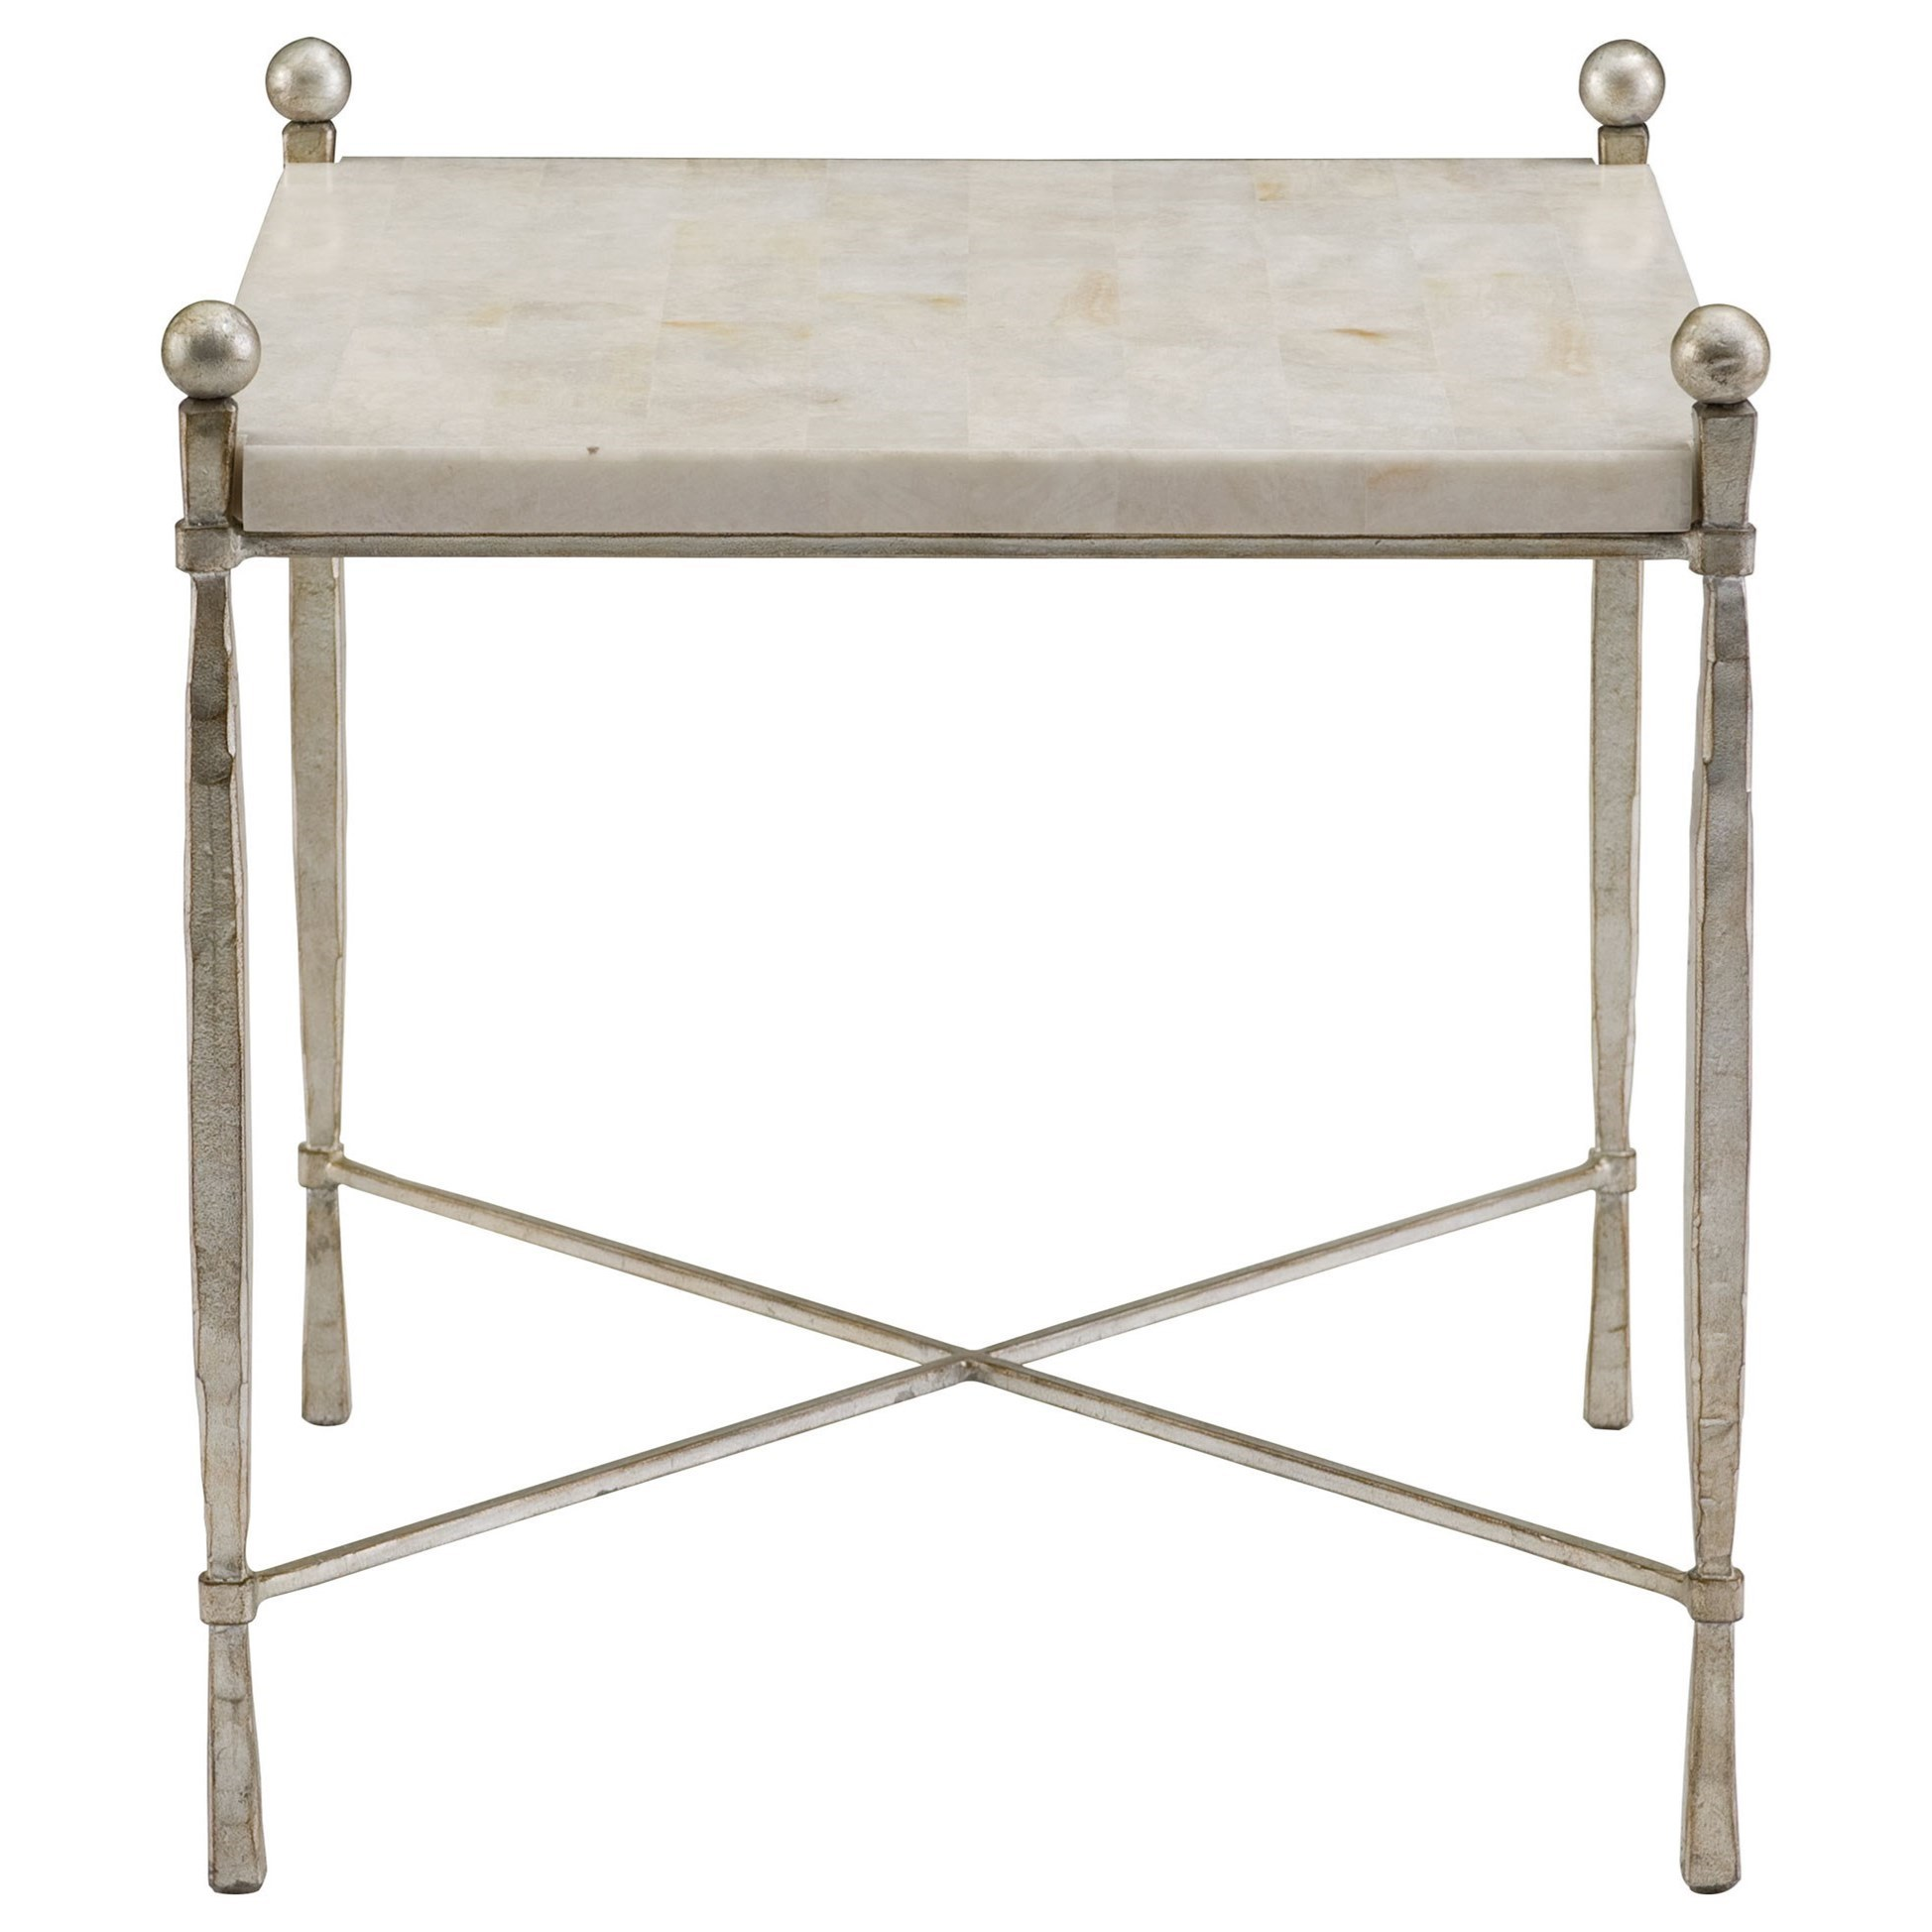 Bernhardt Clarion Chairside Table - Item Number: 563-121